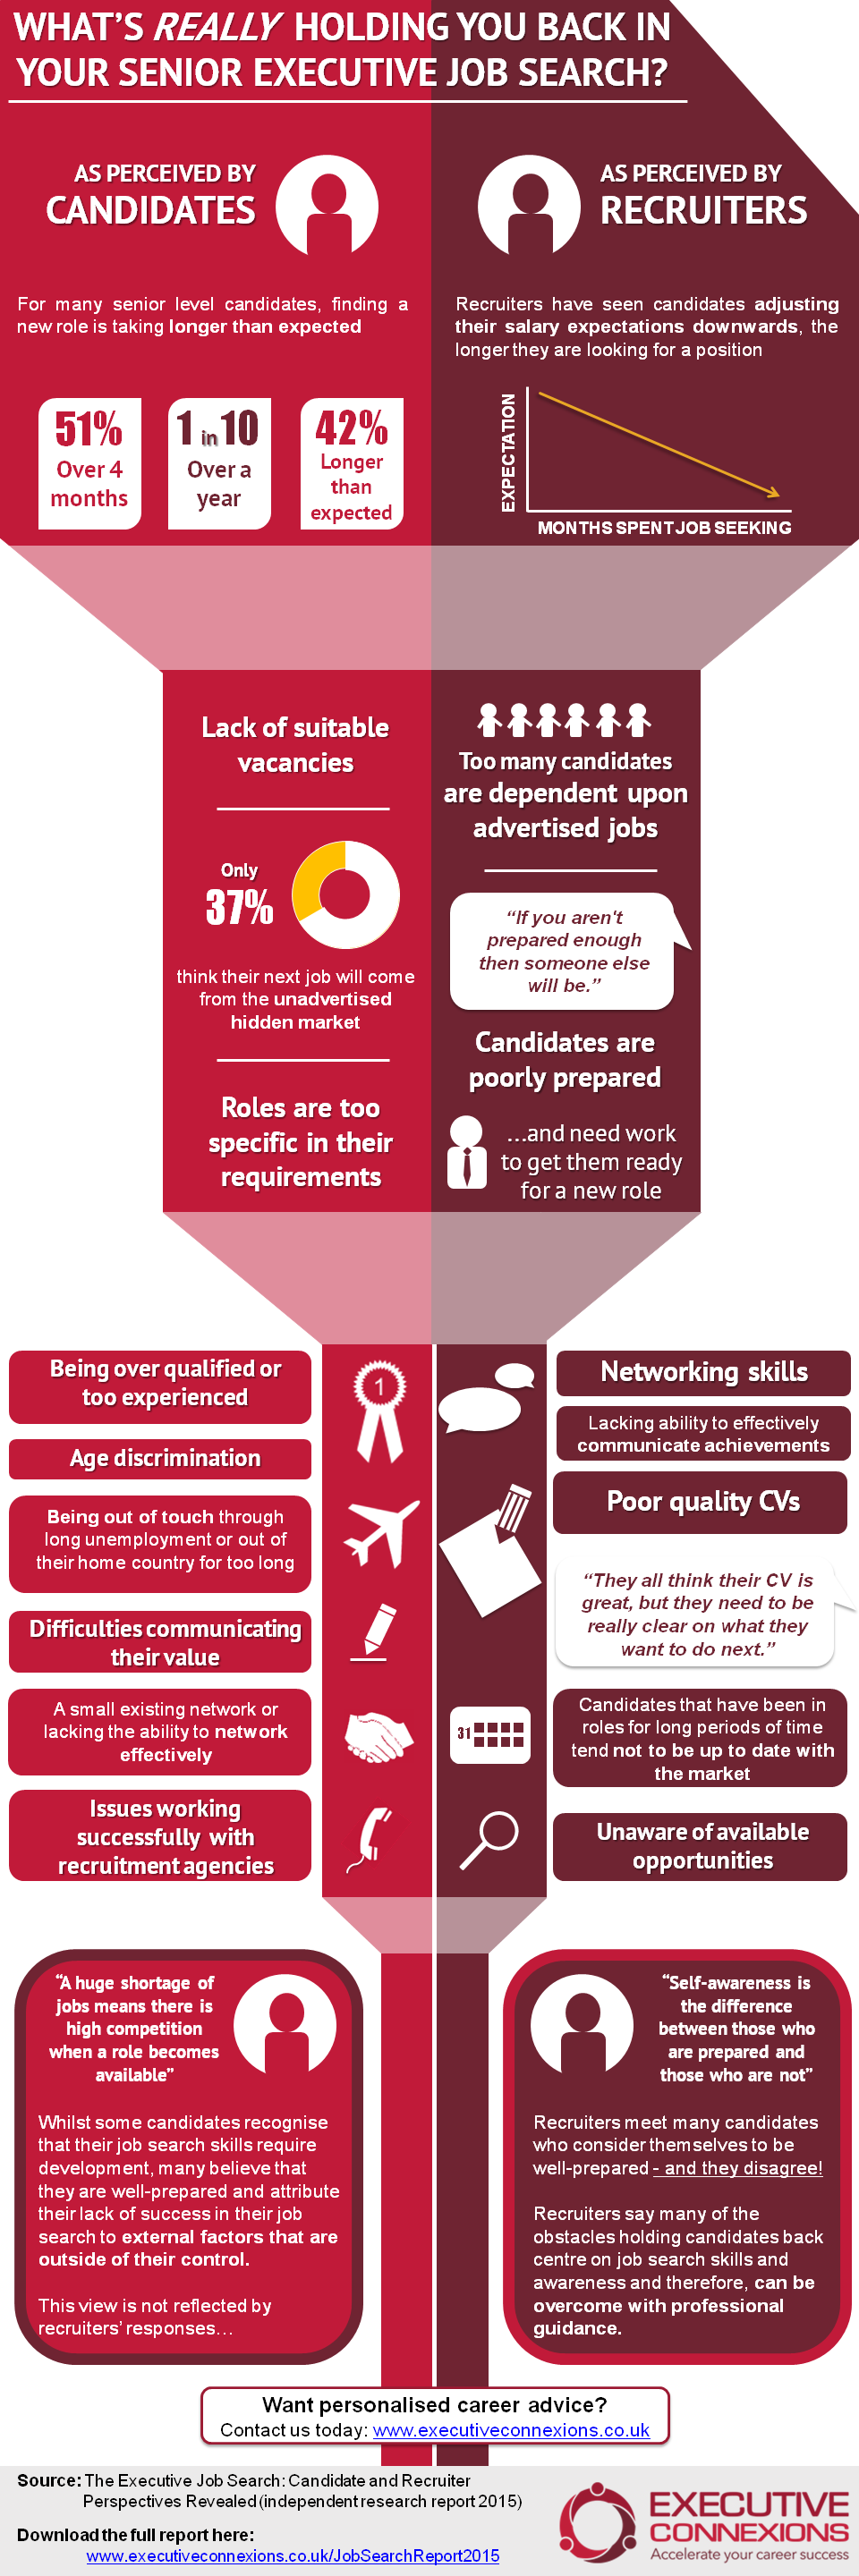 The secrets of the executive job search: what's really holding candidates back? [INFOGRAPHIC] Executive Connexions